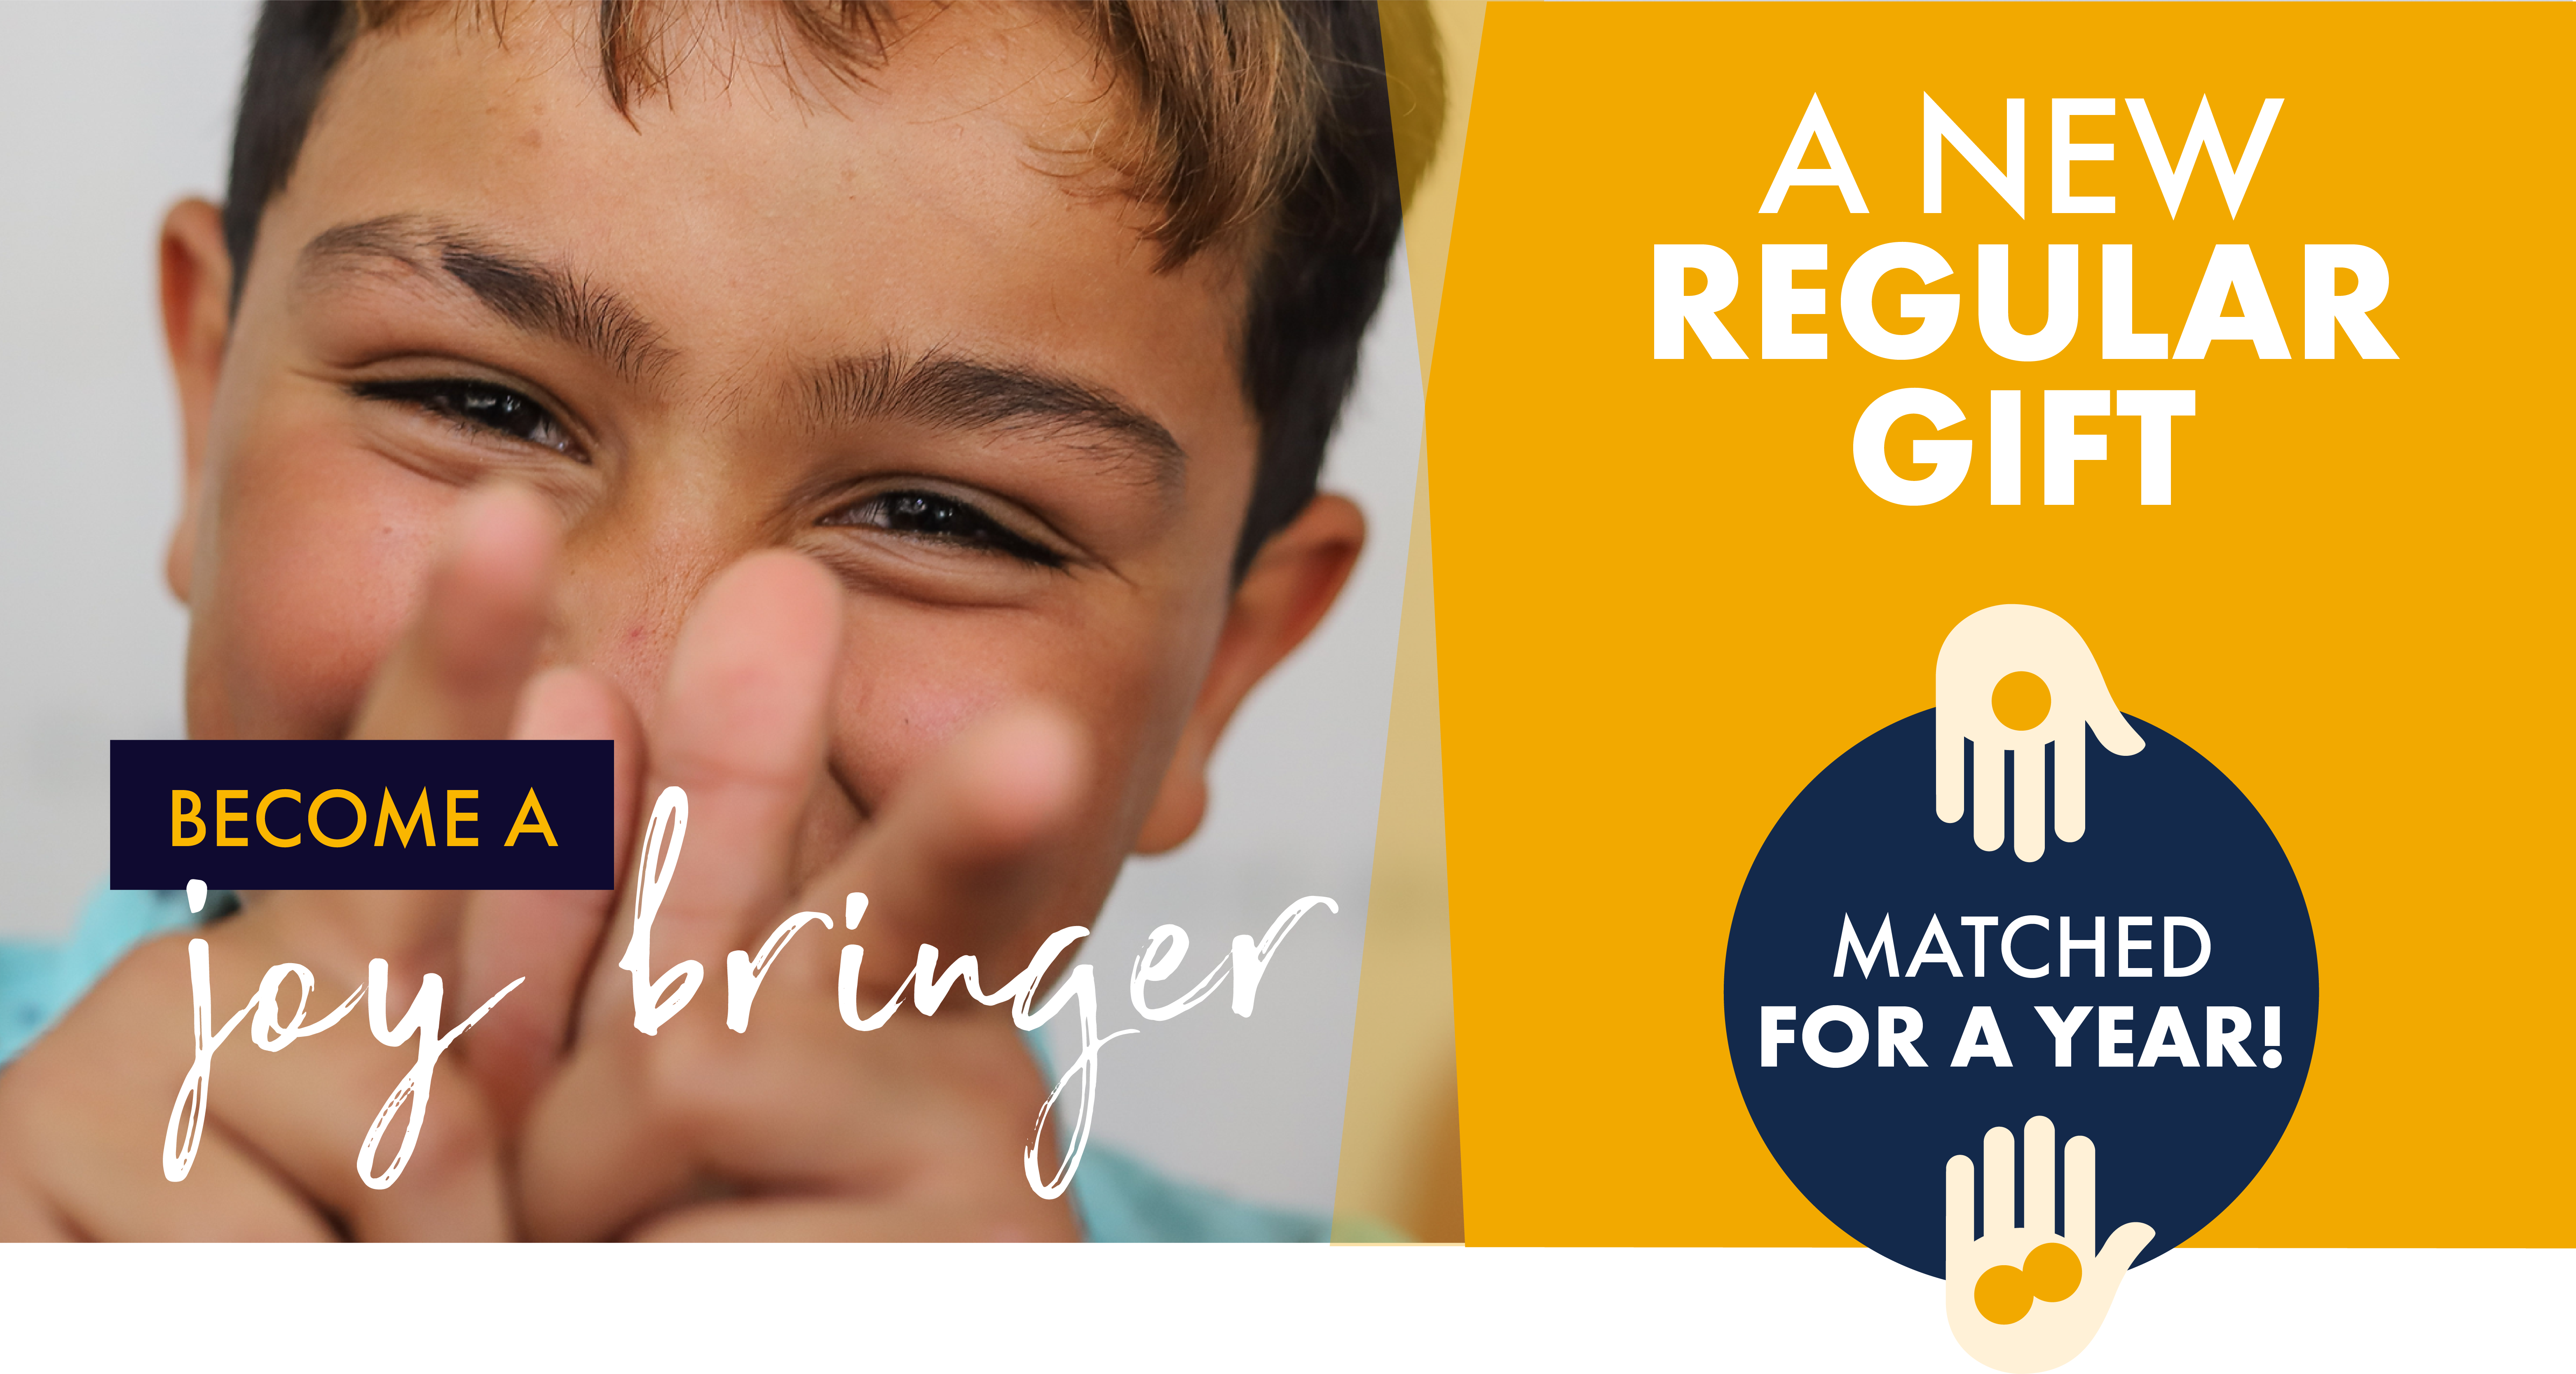 Become a joy bringer with a new regular gift - matched for a year